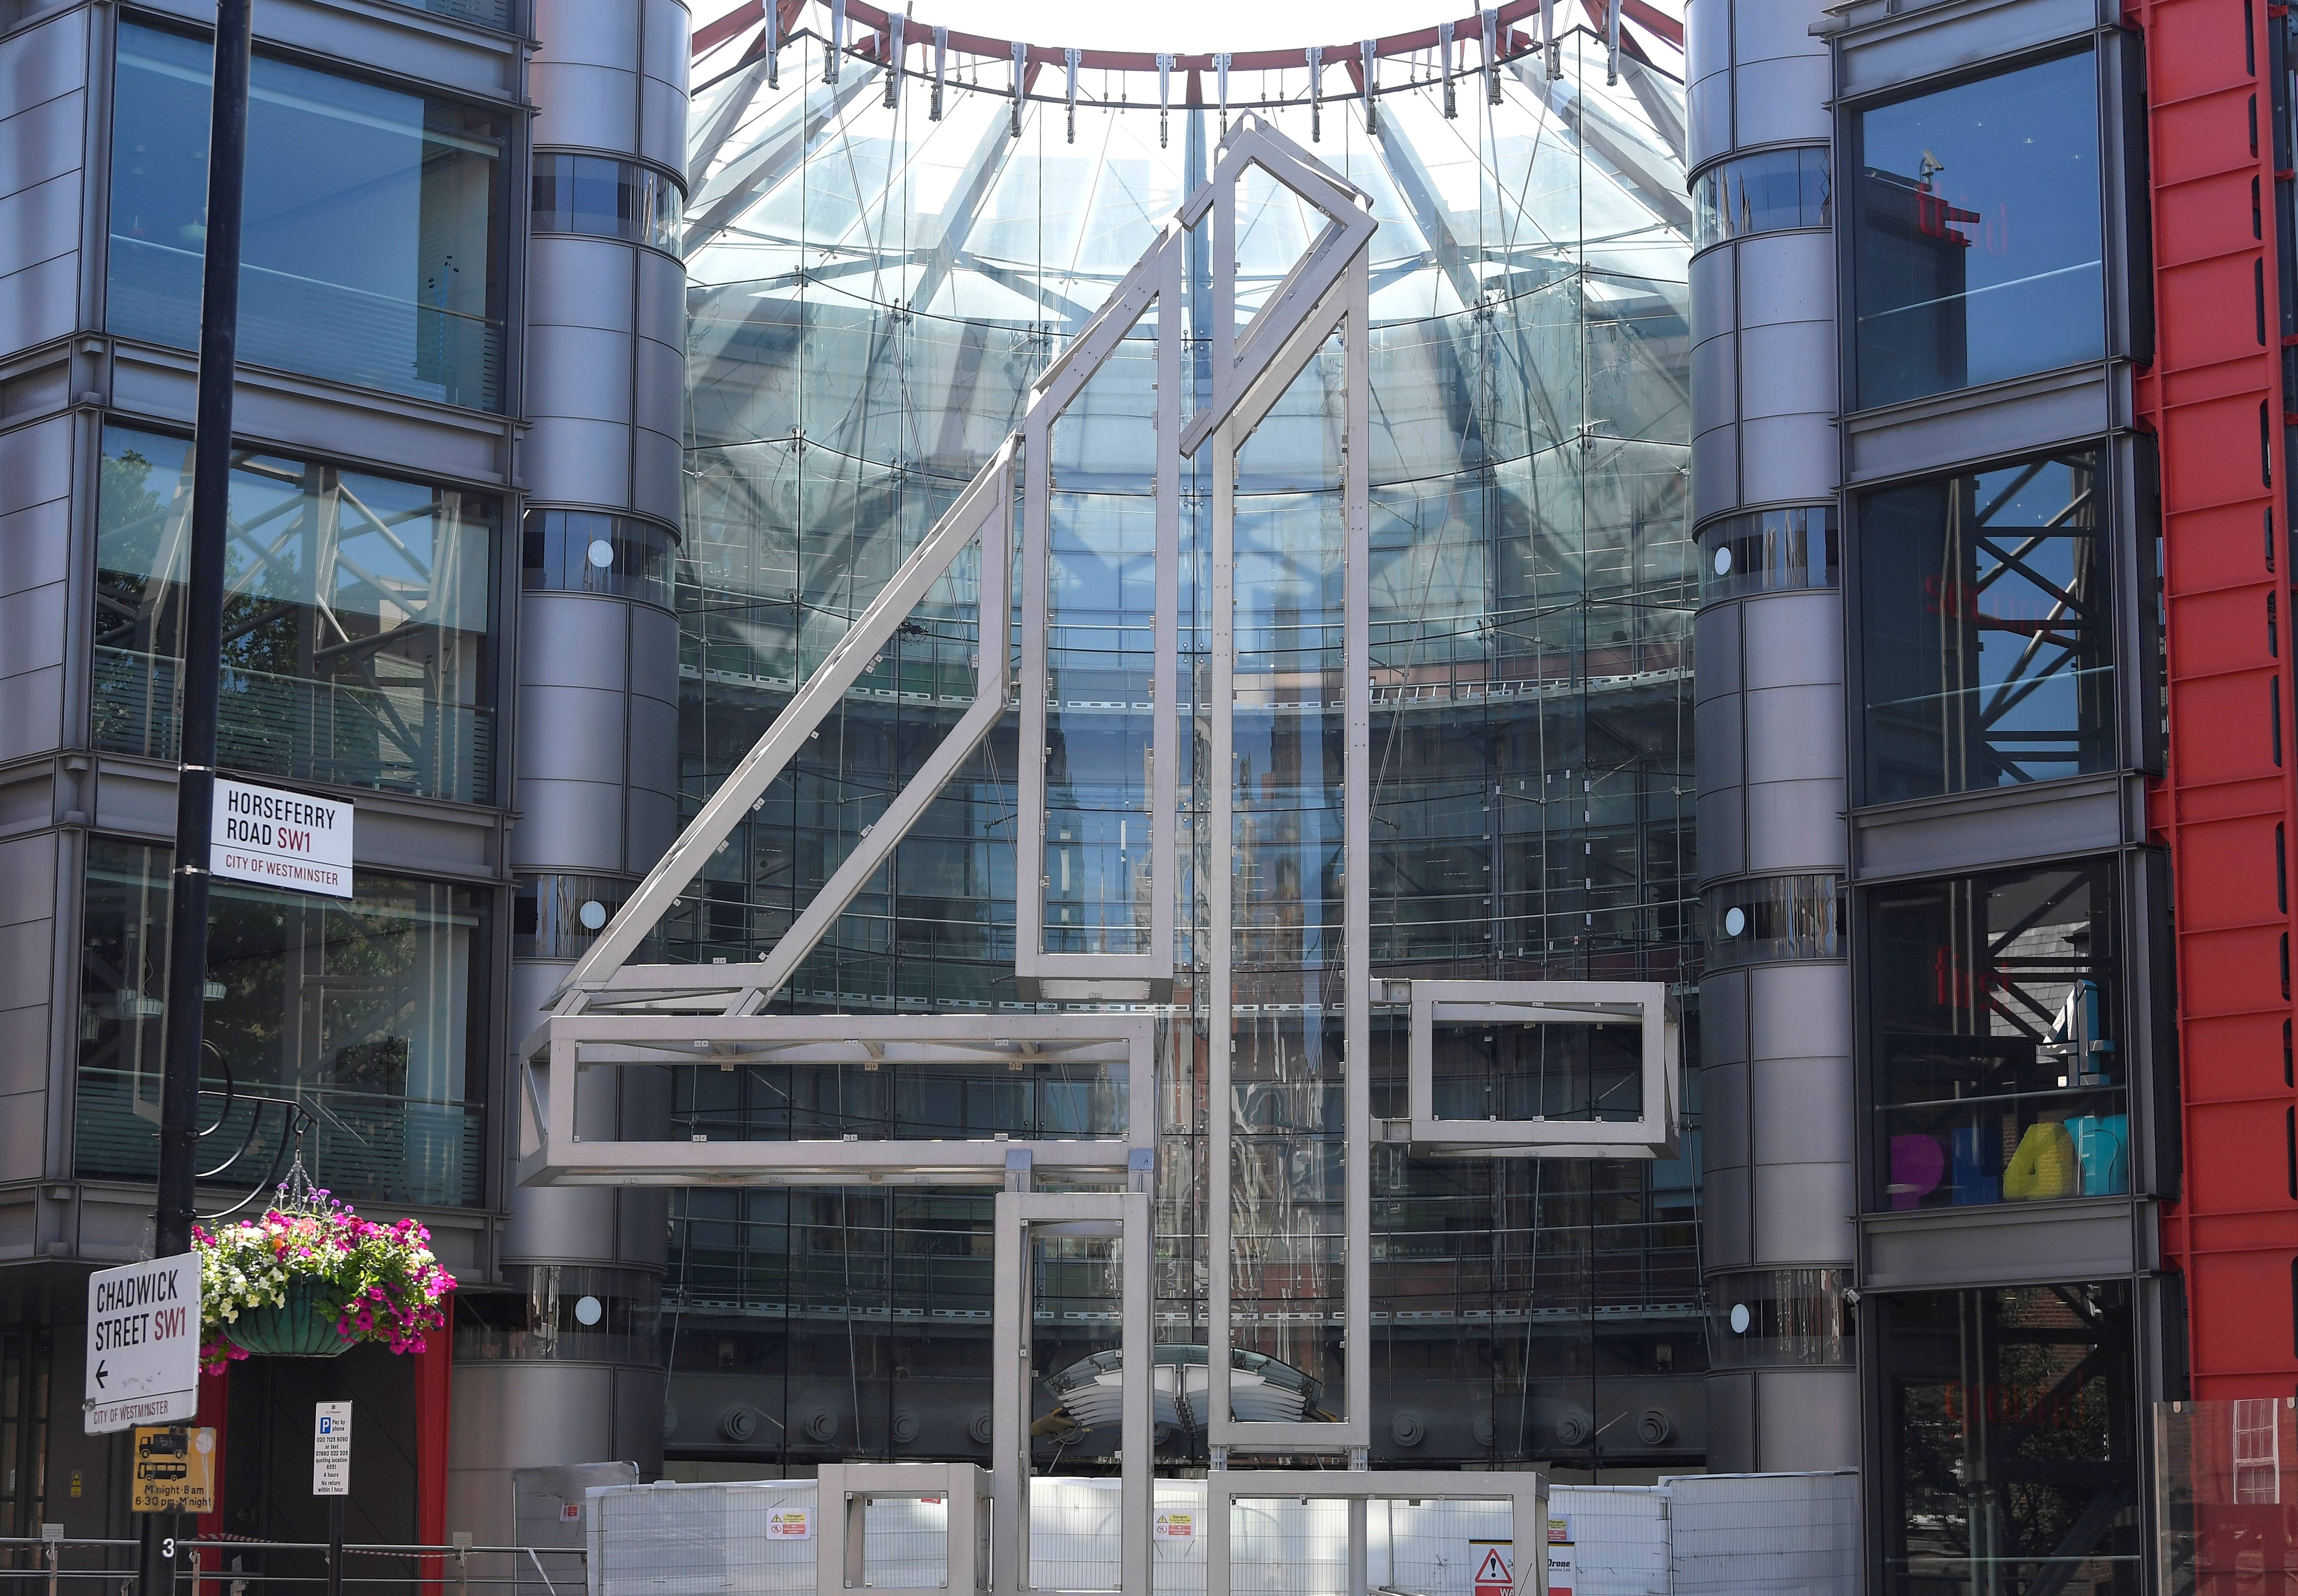 Channel 4 television channel offices are seen in London, Britain, June 23, 2021. REUTERS/Toby Melville